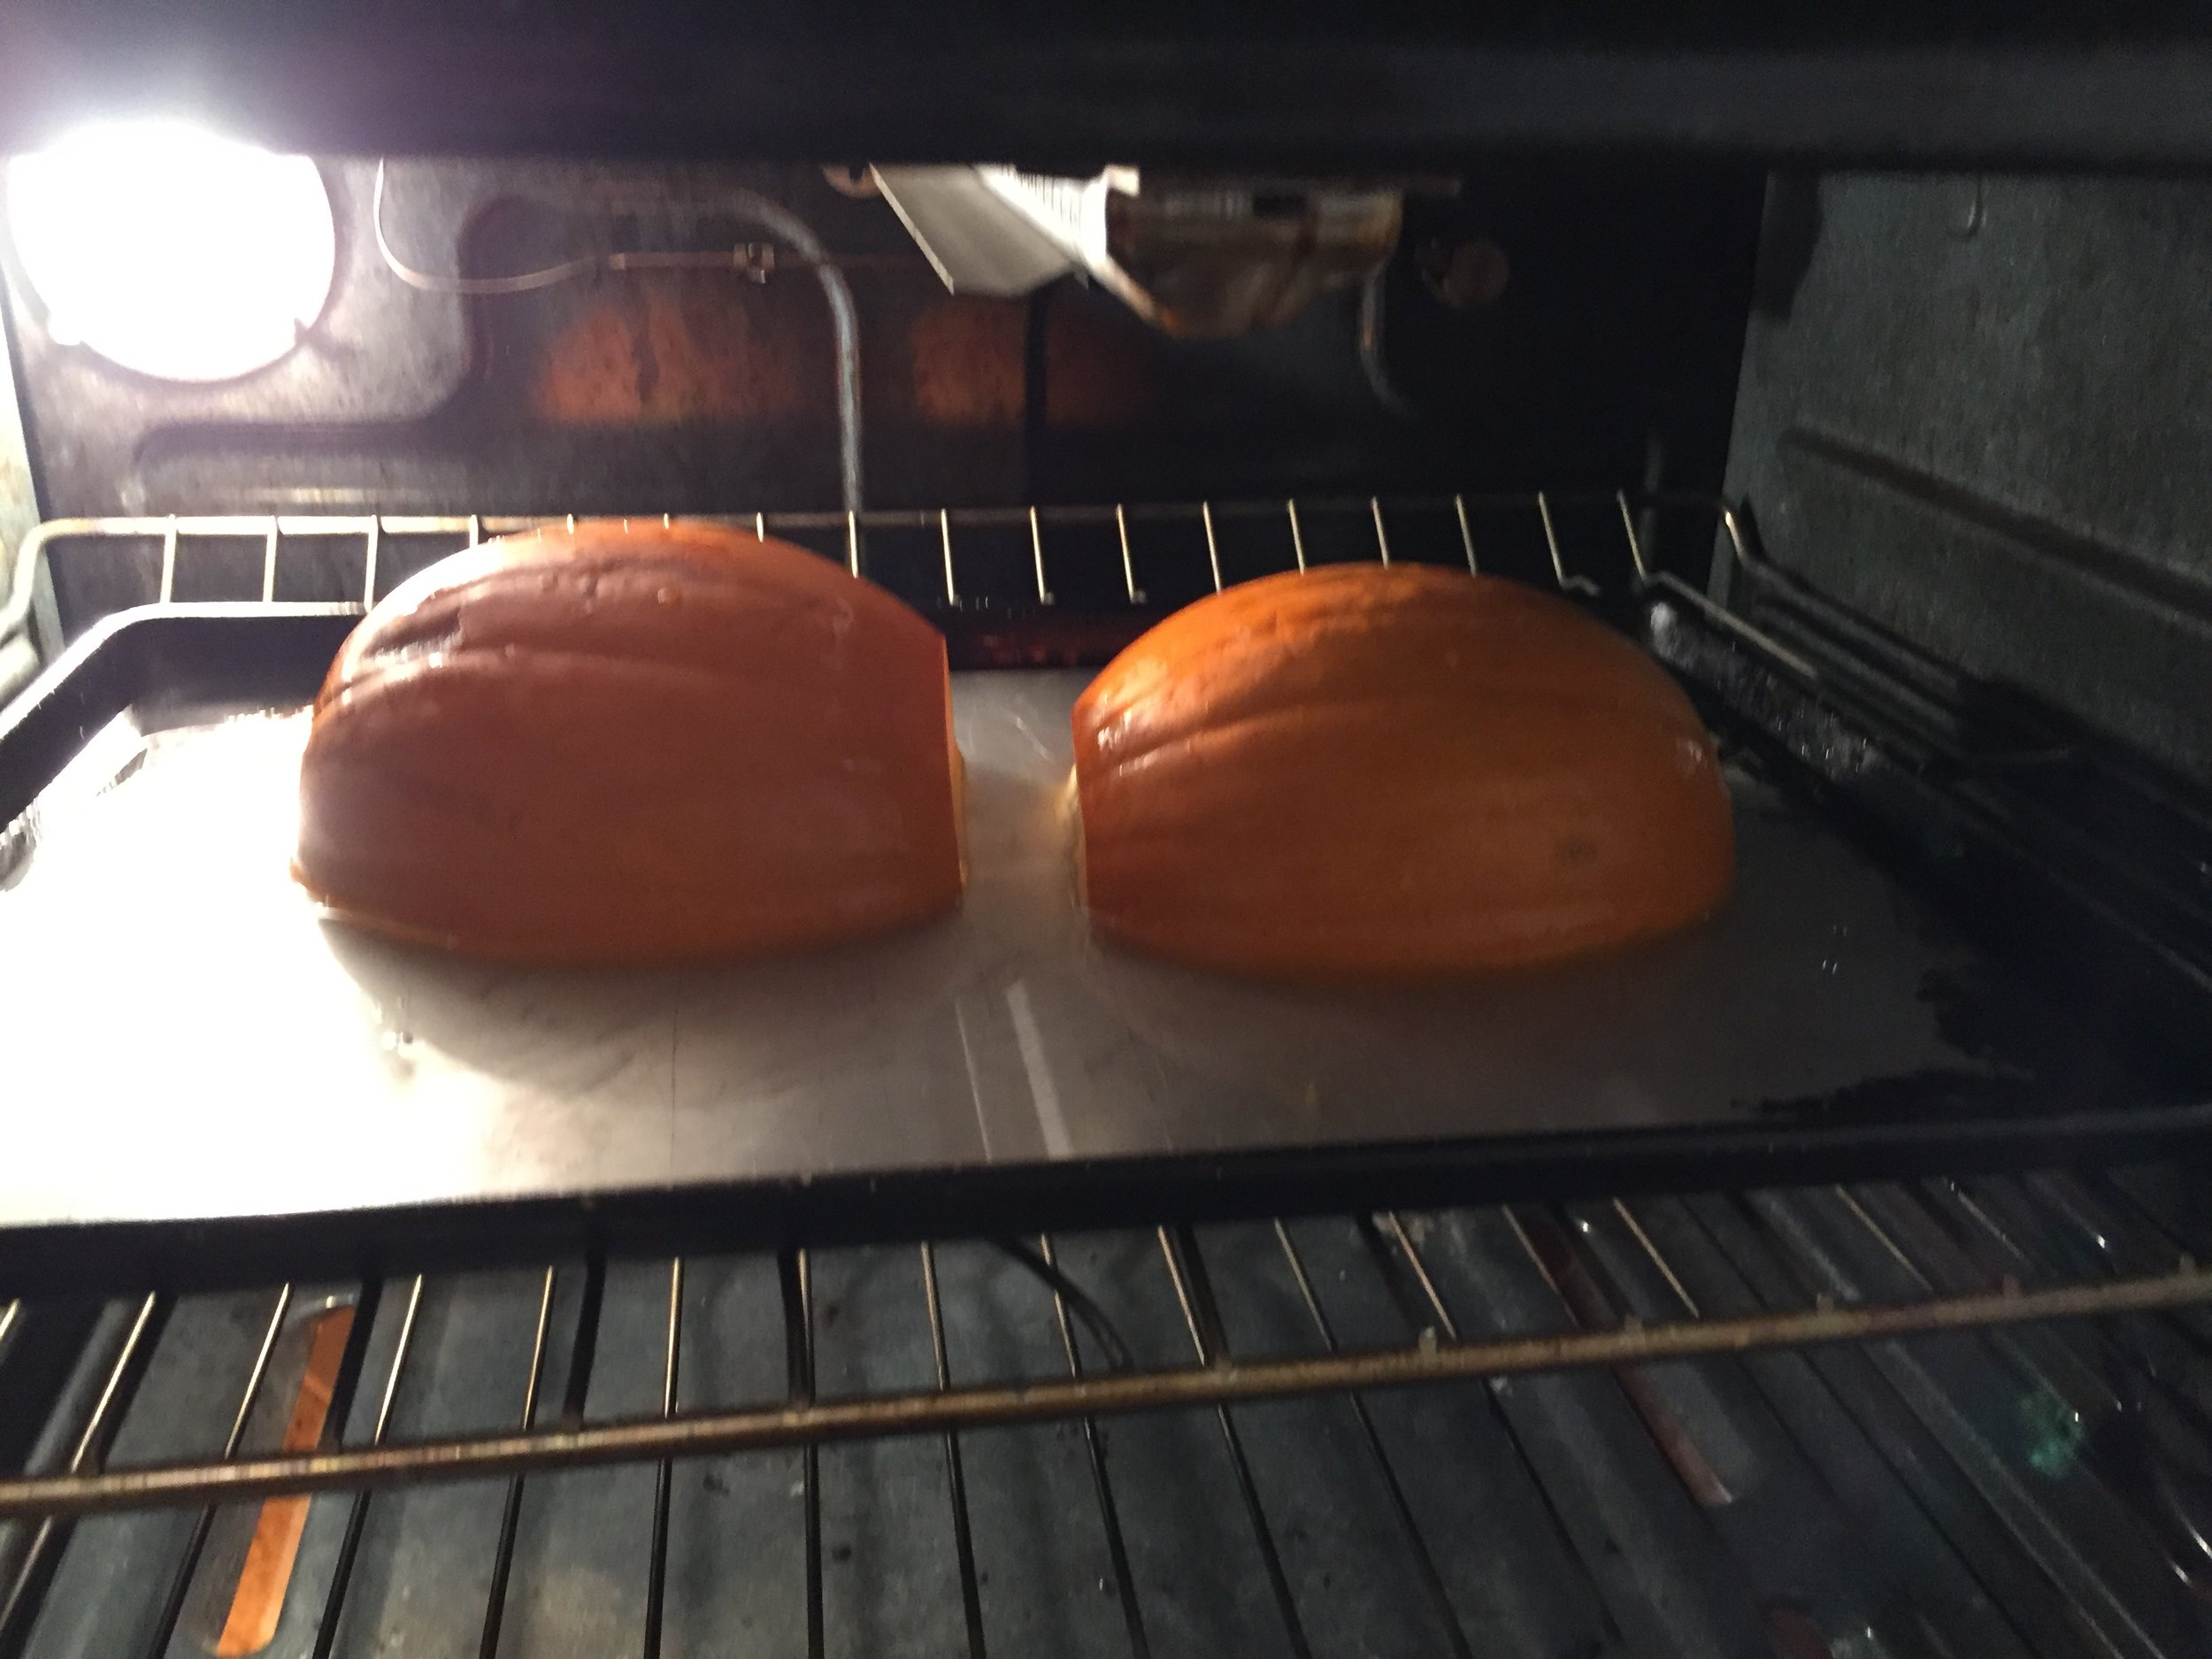 Little pumpkin baking until soft.